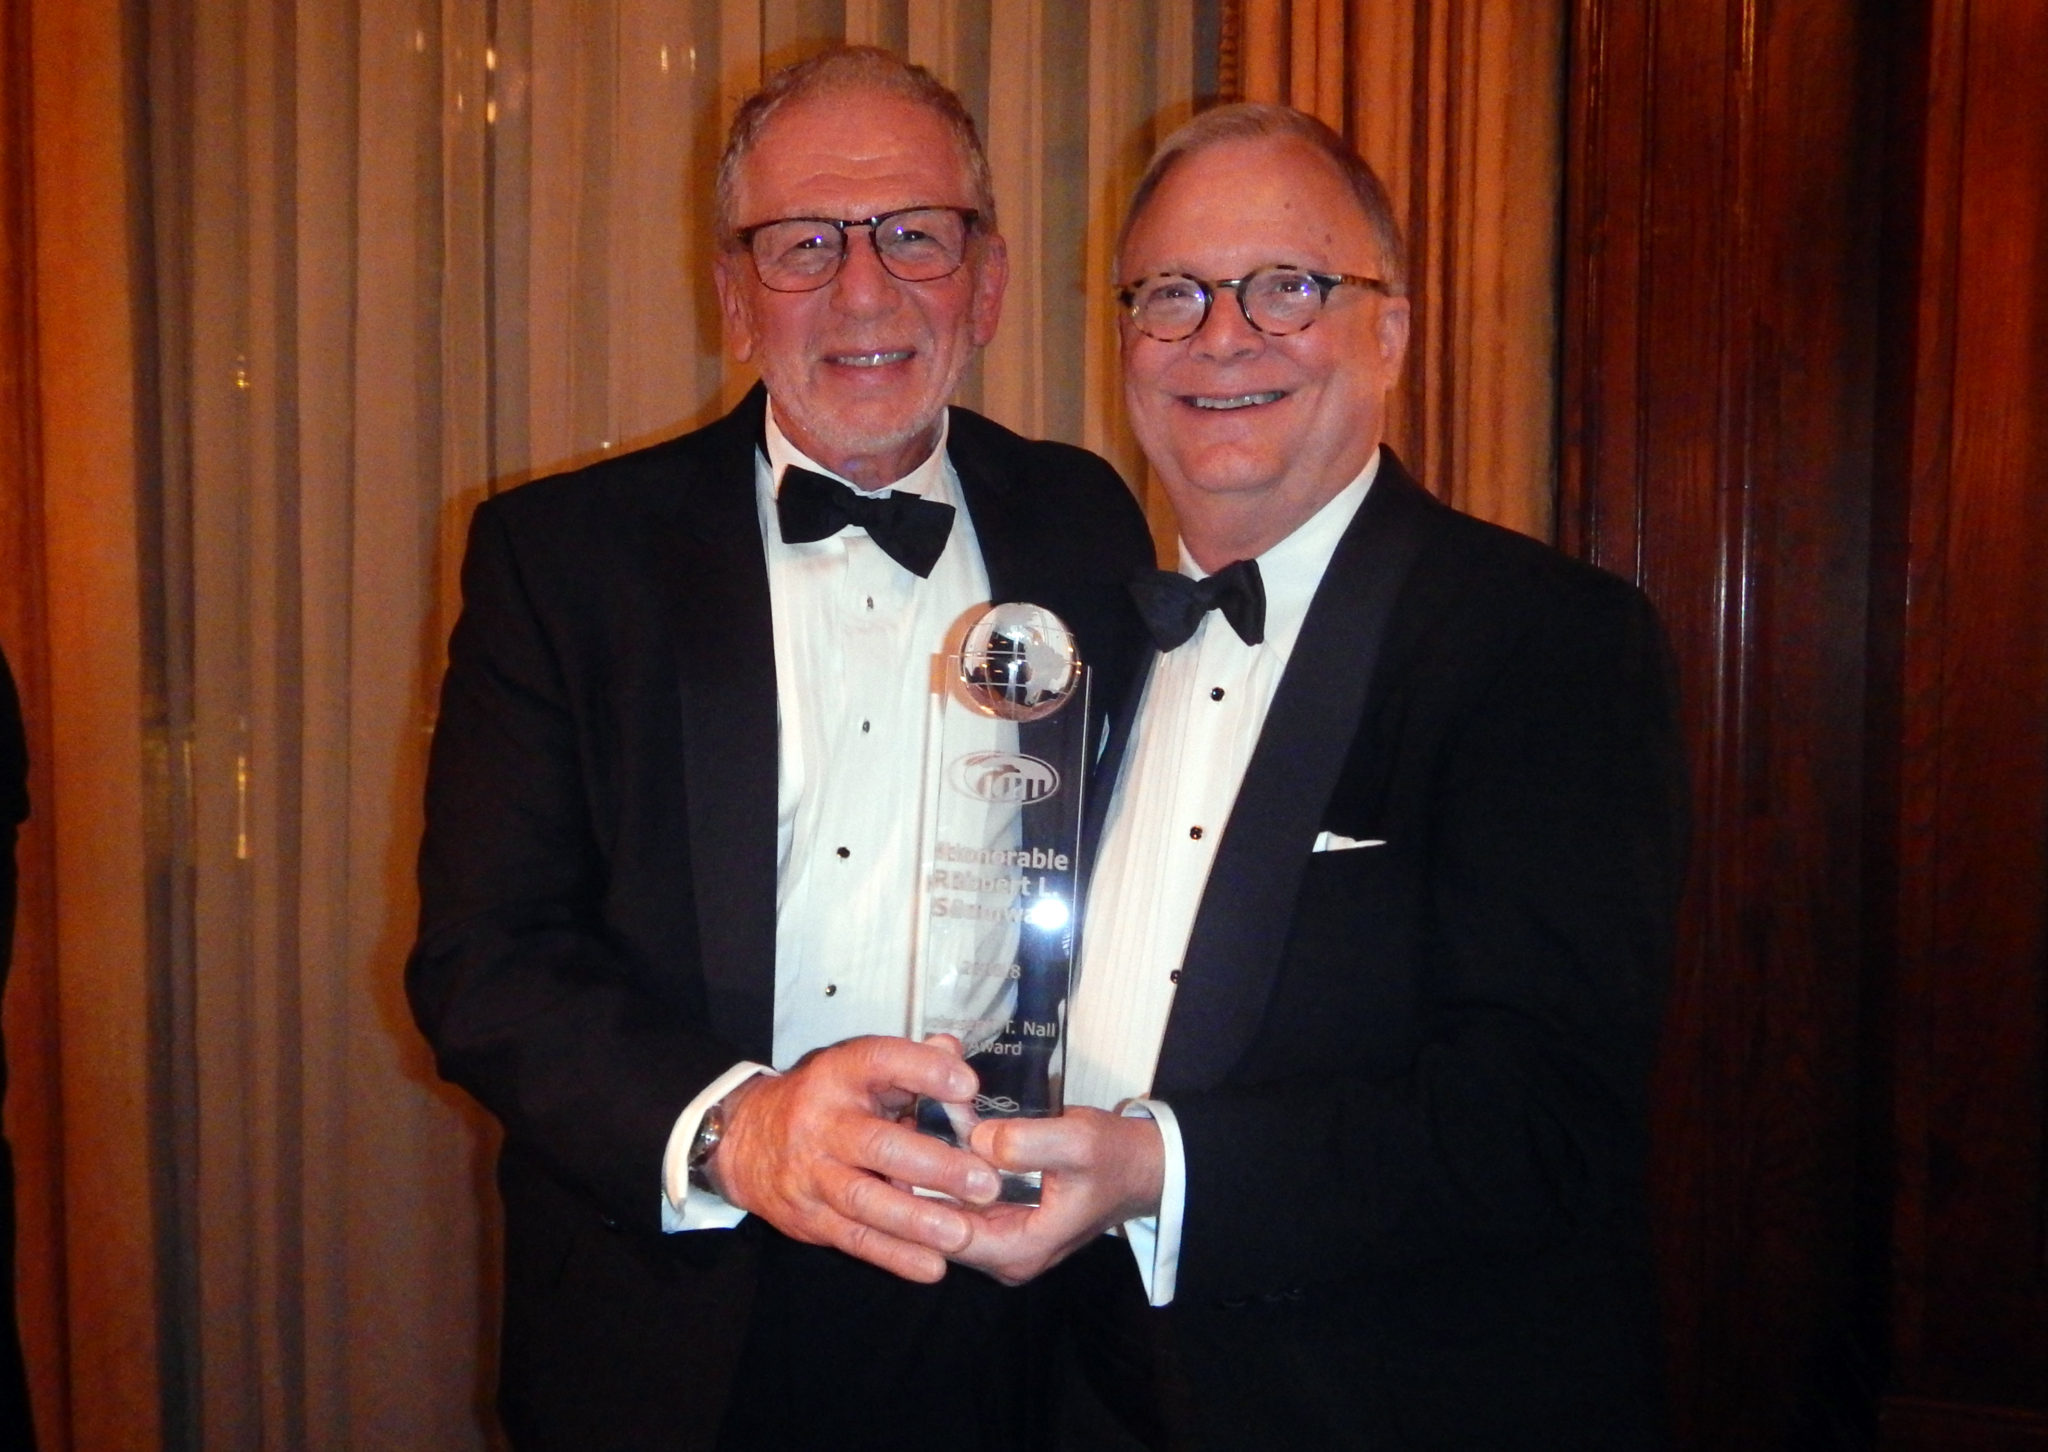 Mike Dworkin presents NTSB Chair Sumwalt with the Nall Award;  Photo by Robert L. Feldman